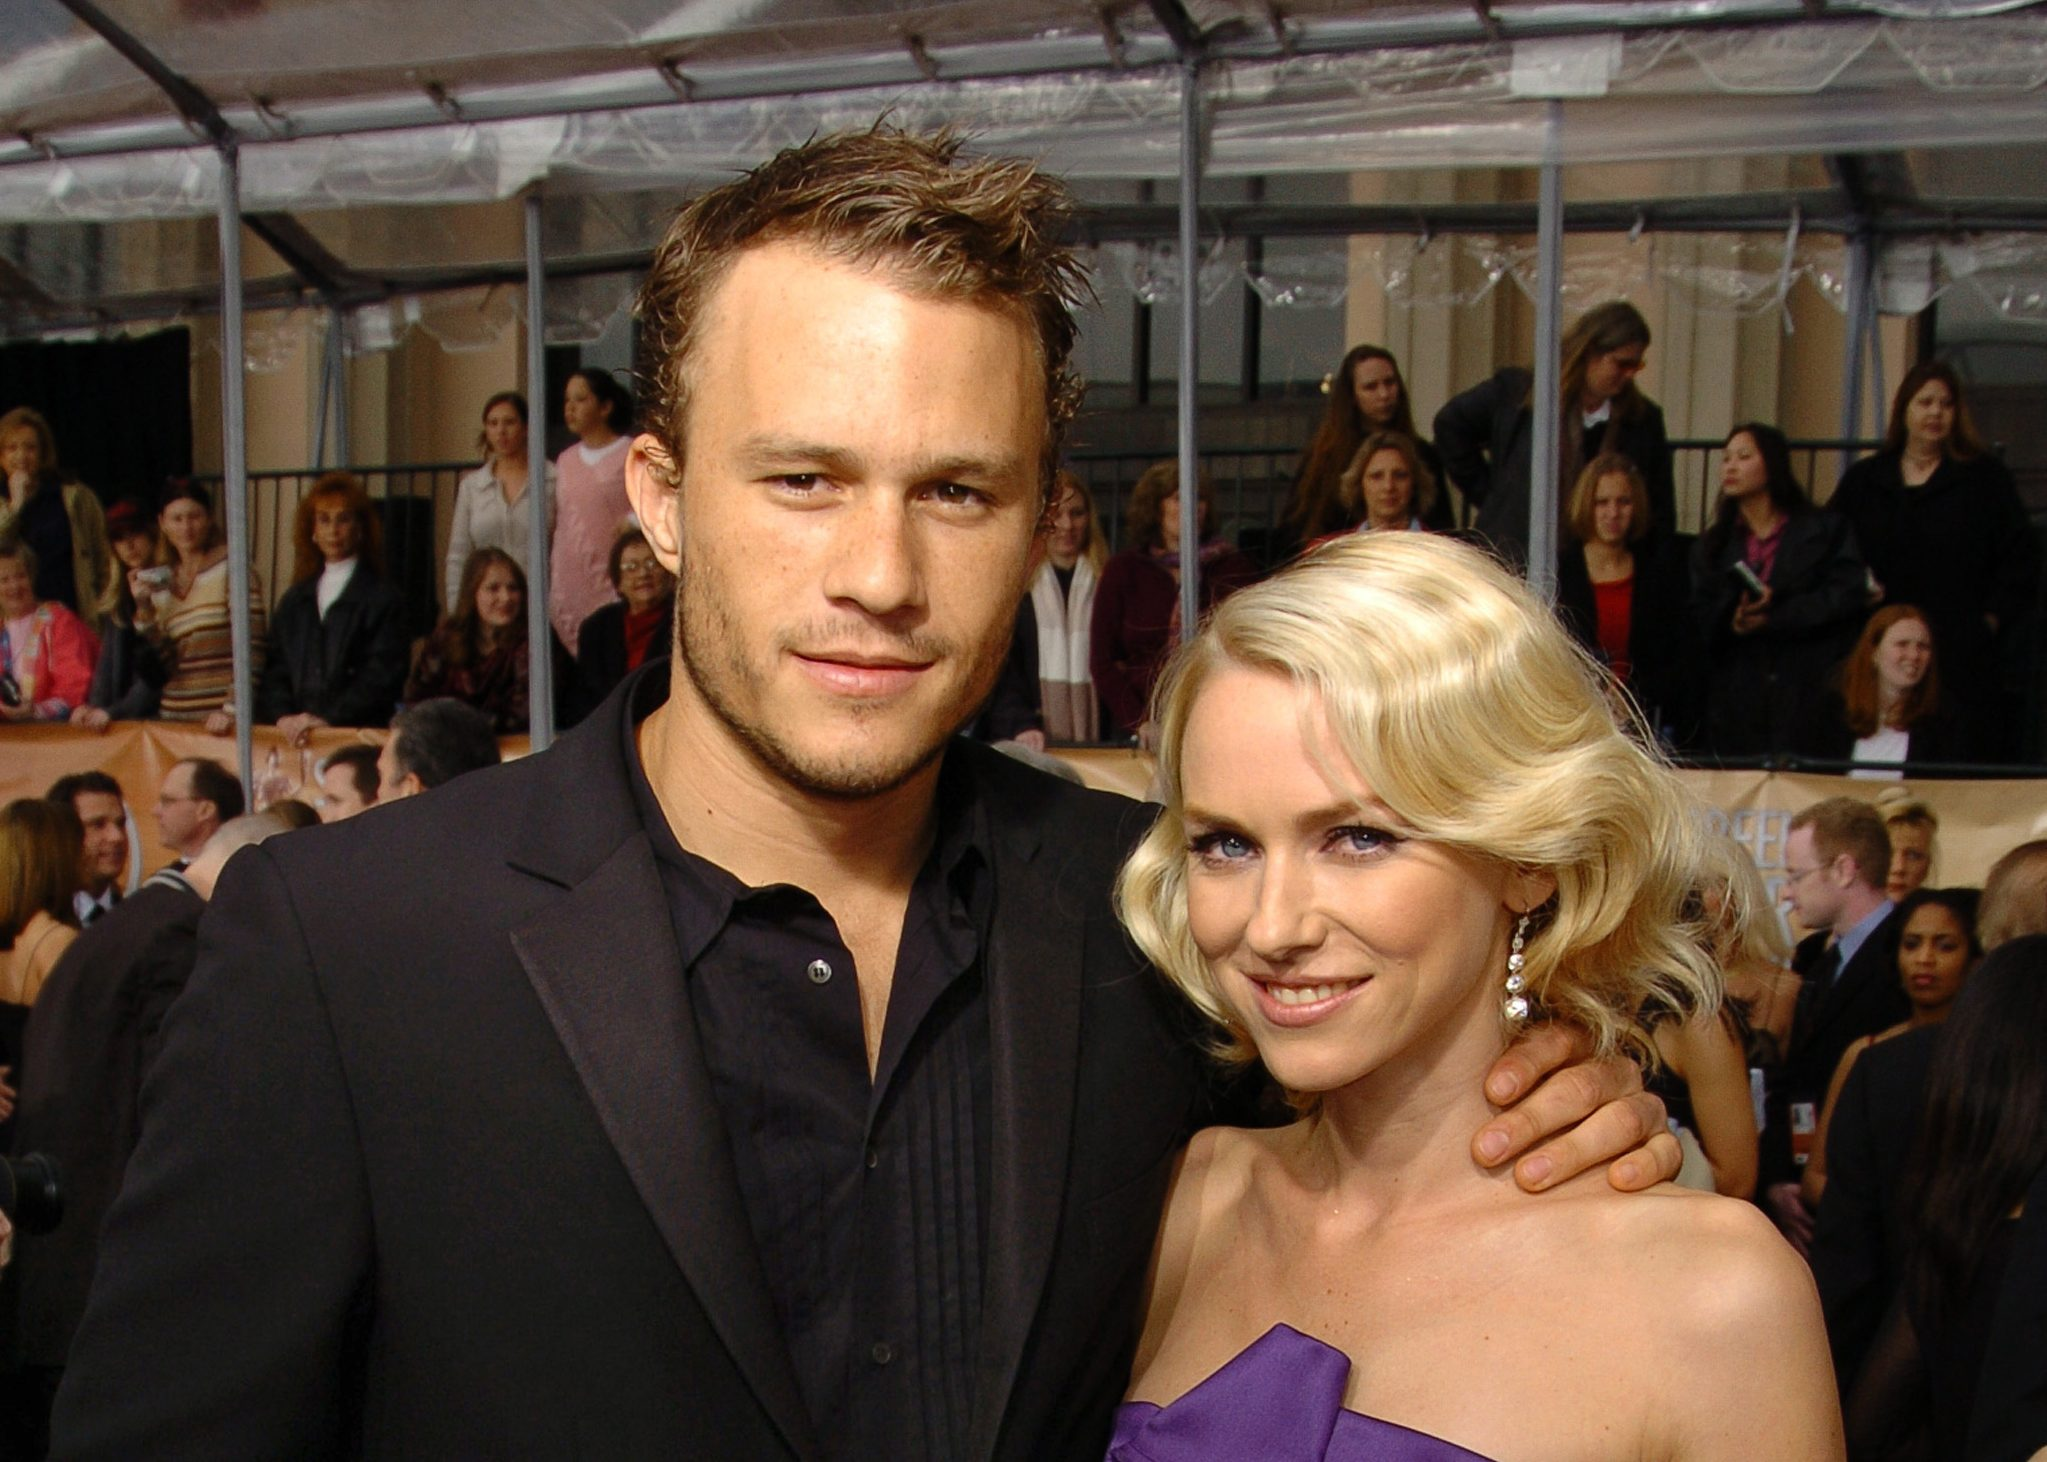 Heath Ledger's ex Naomi Watts recalls the day she found out he'd died